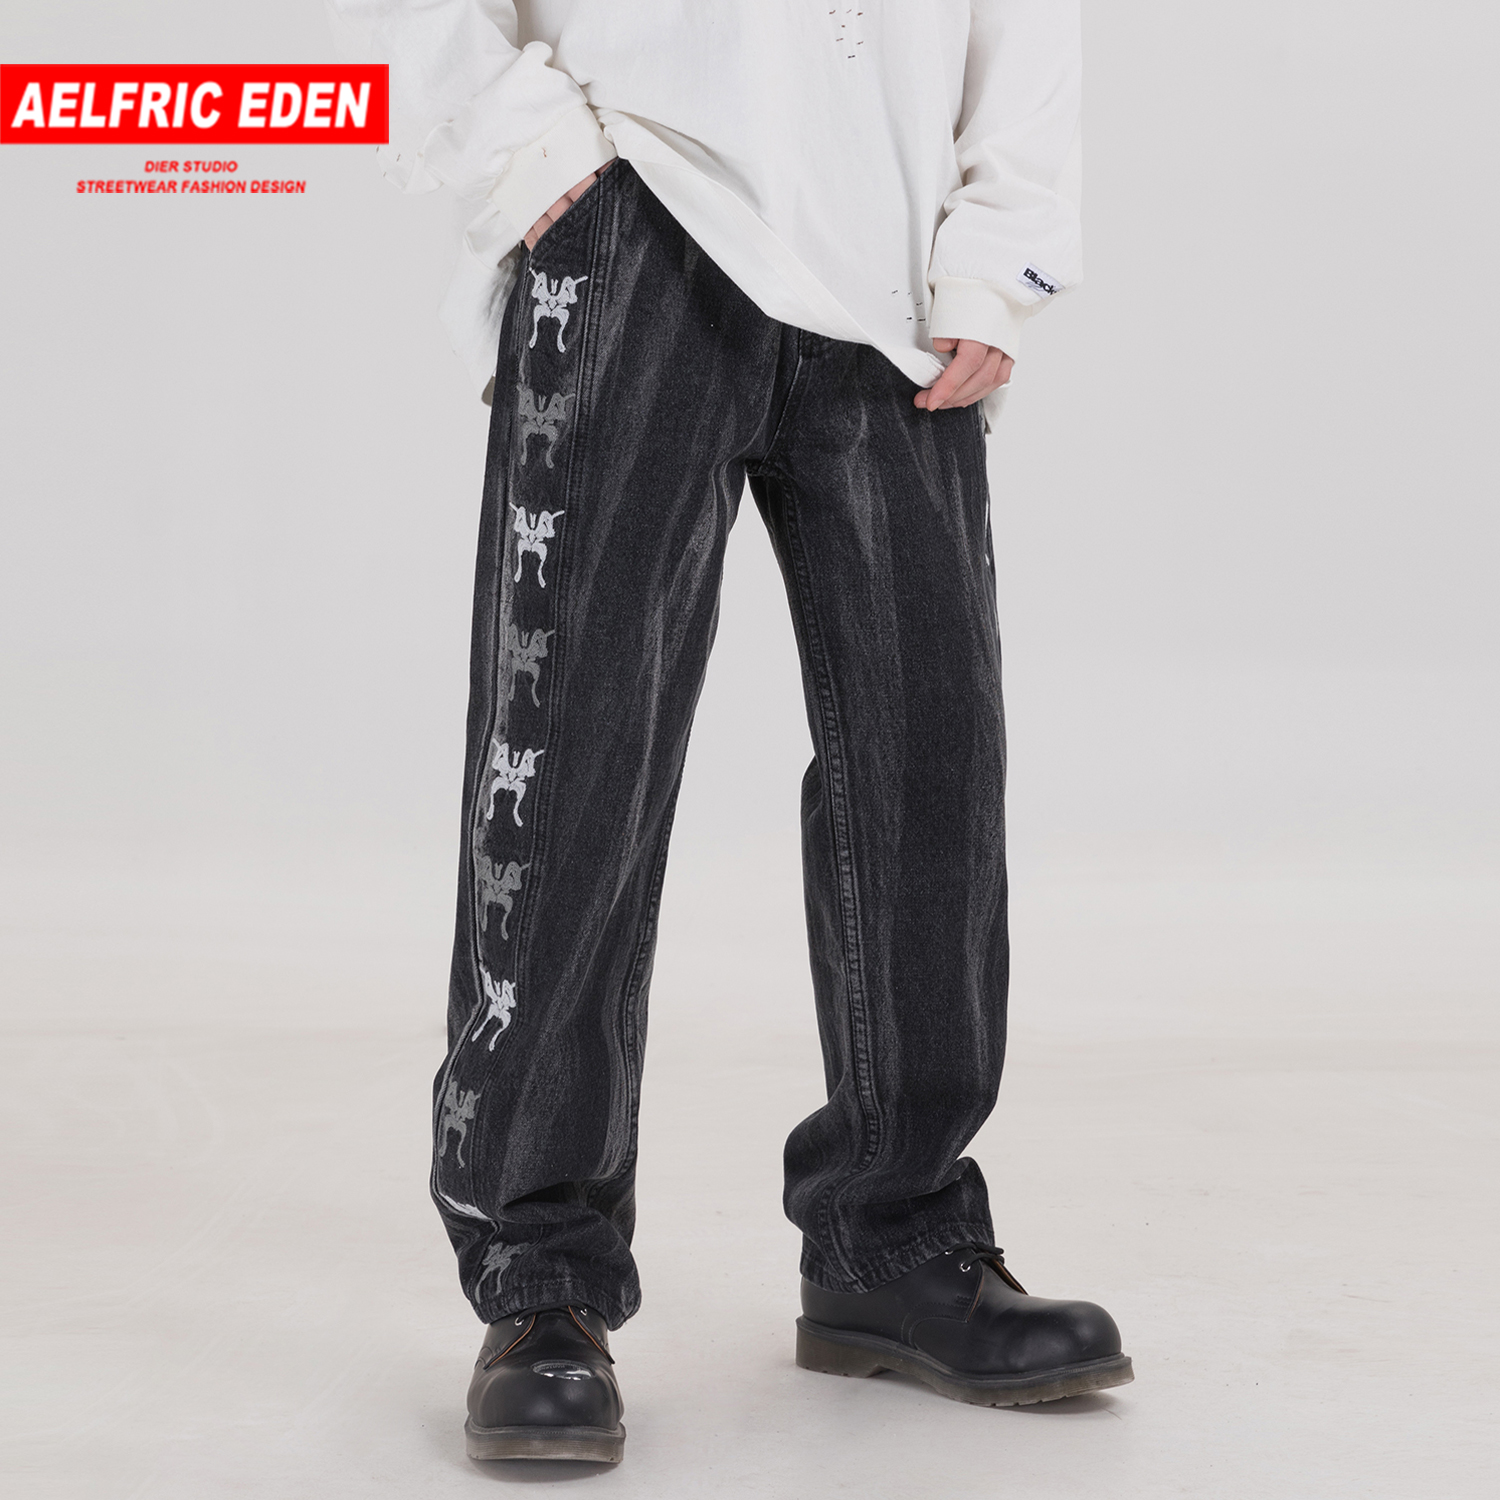 Aelfric Eden Vintage Butterfly Embroidery Jeans Harajuku Hip Hop Straight Pants Casual Fashion Streetwear Joggers Men Trousers